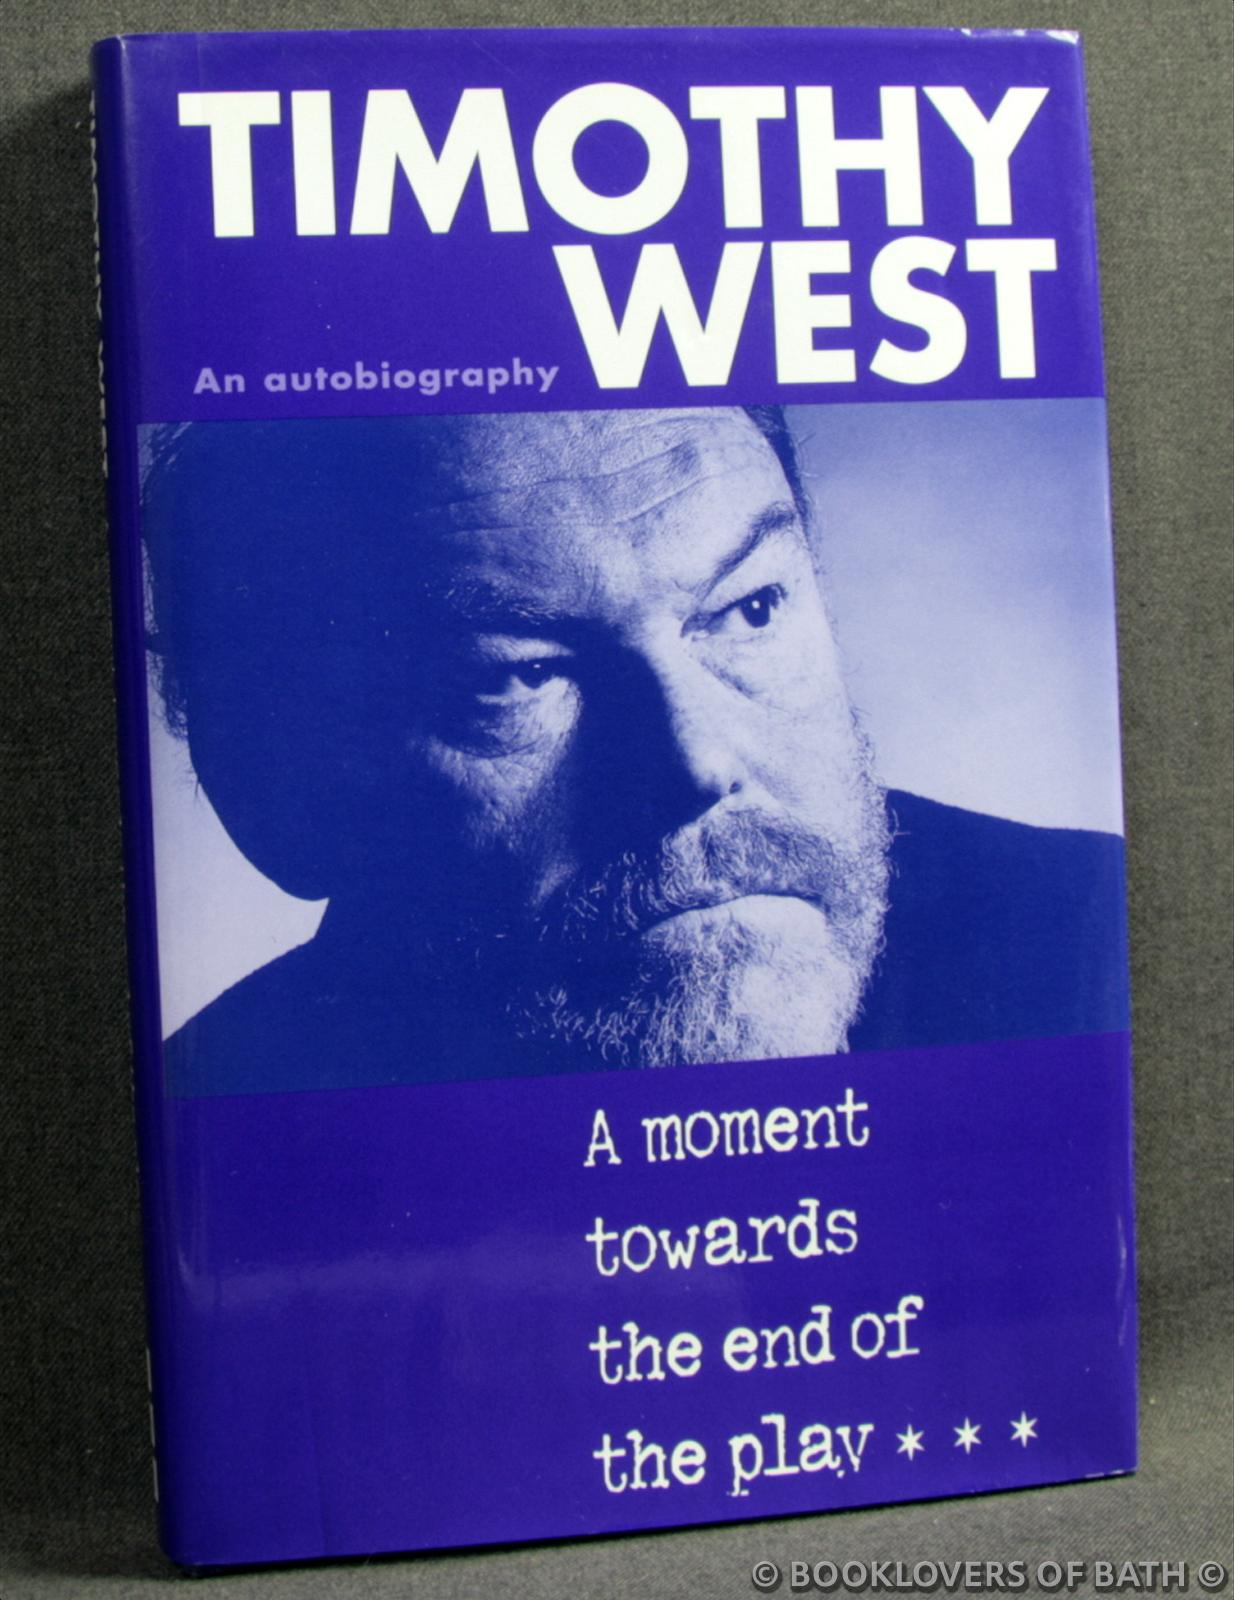 A Moment Towards the End of the Play - Timothy West